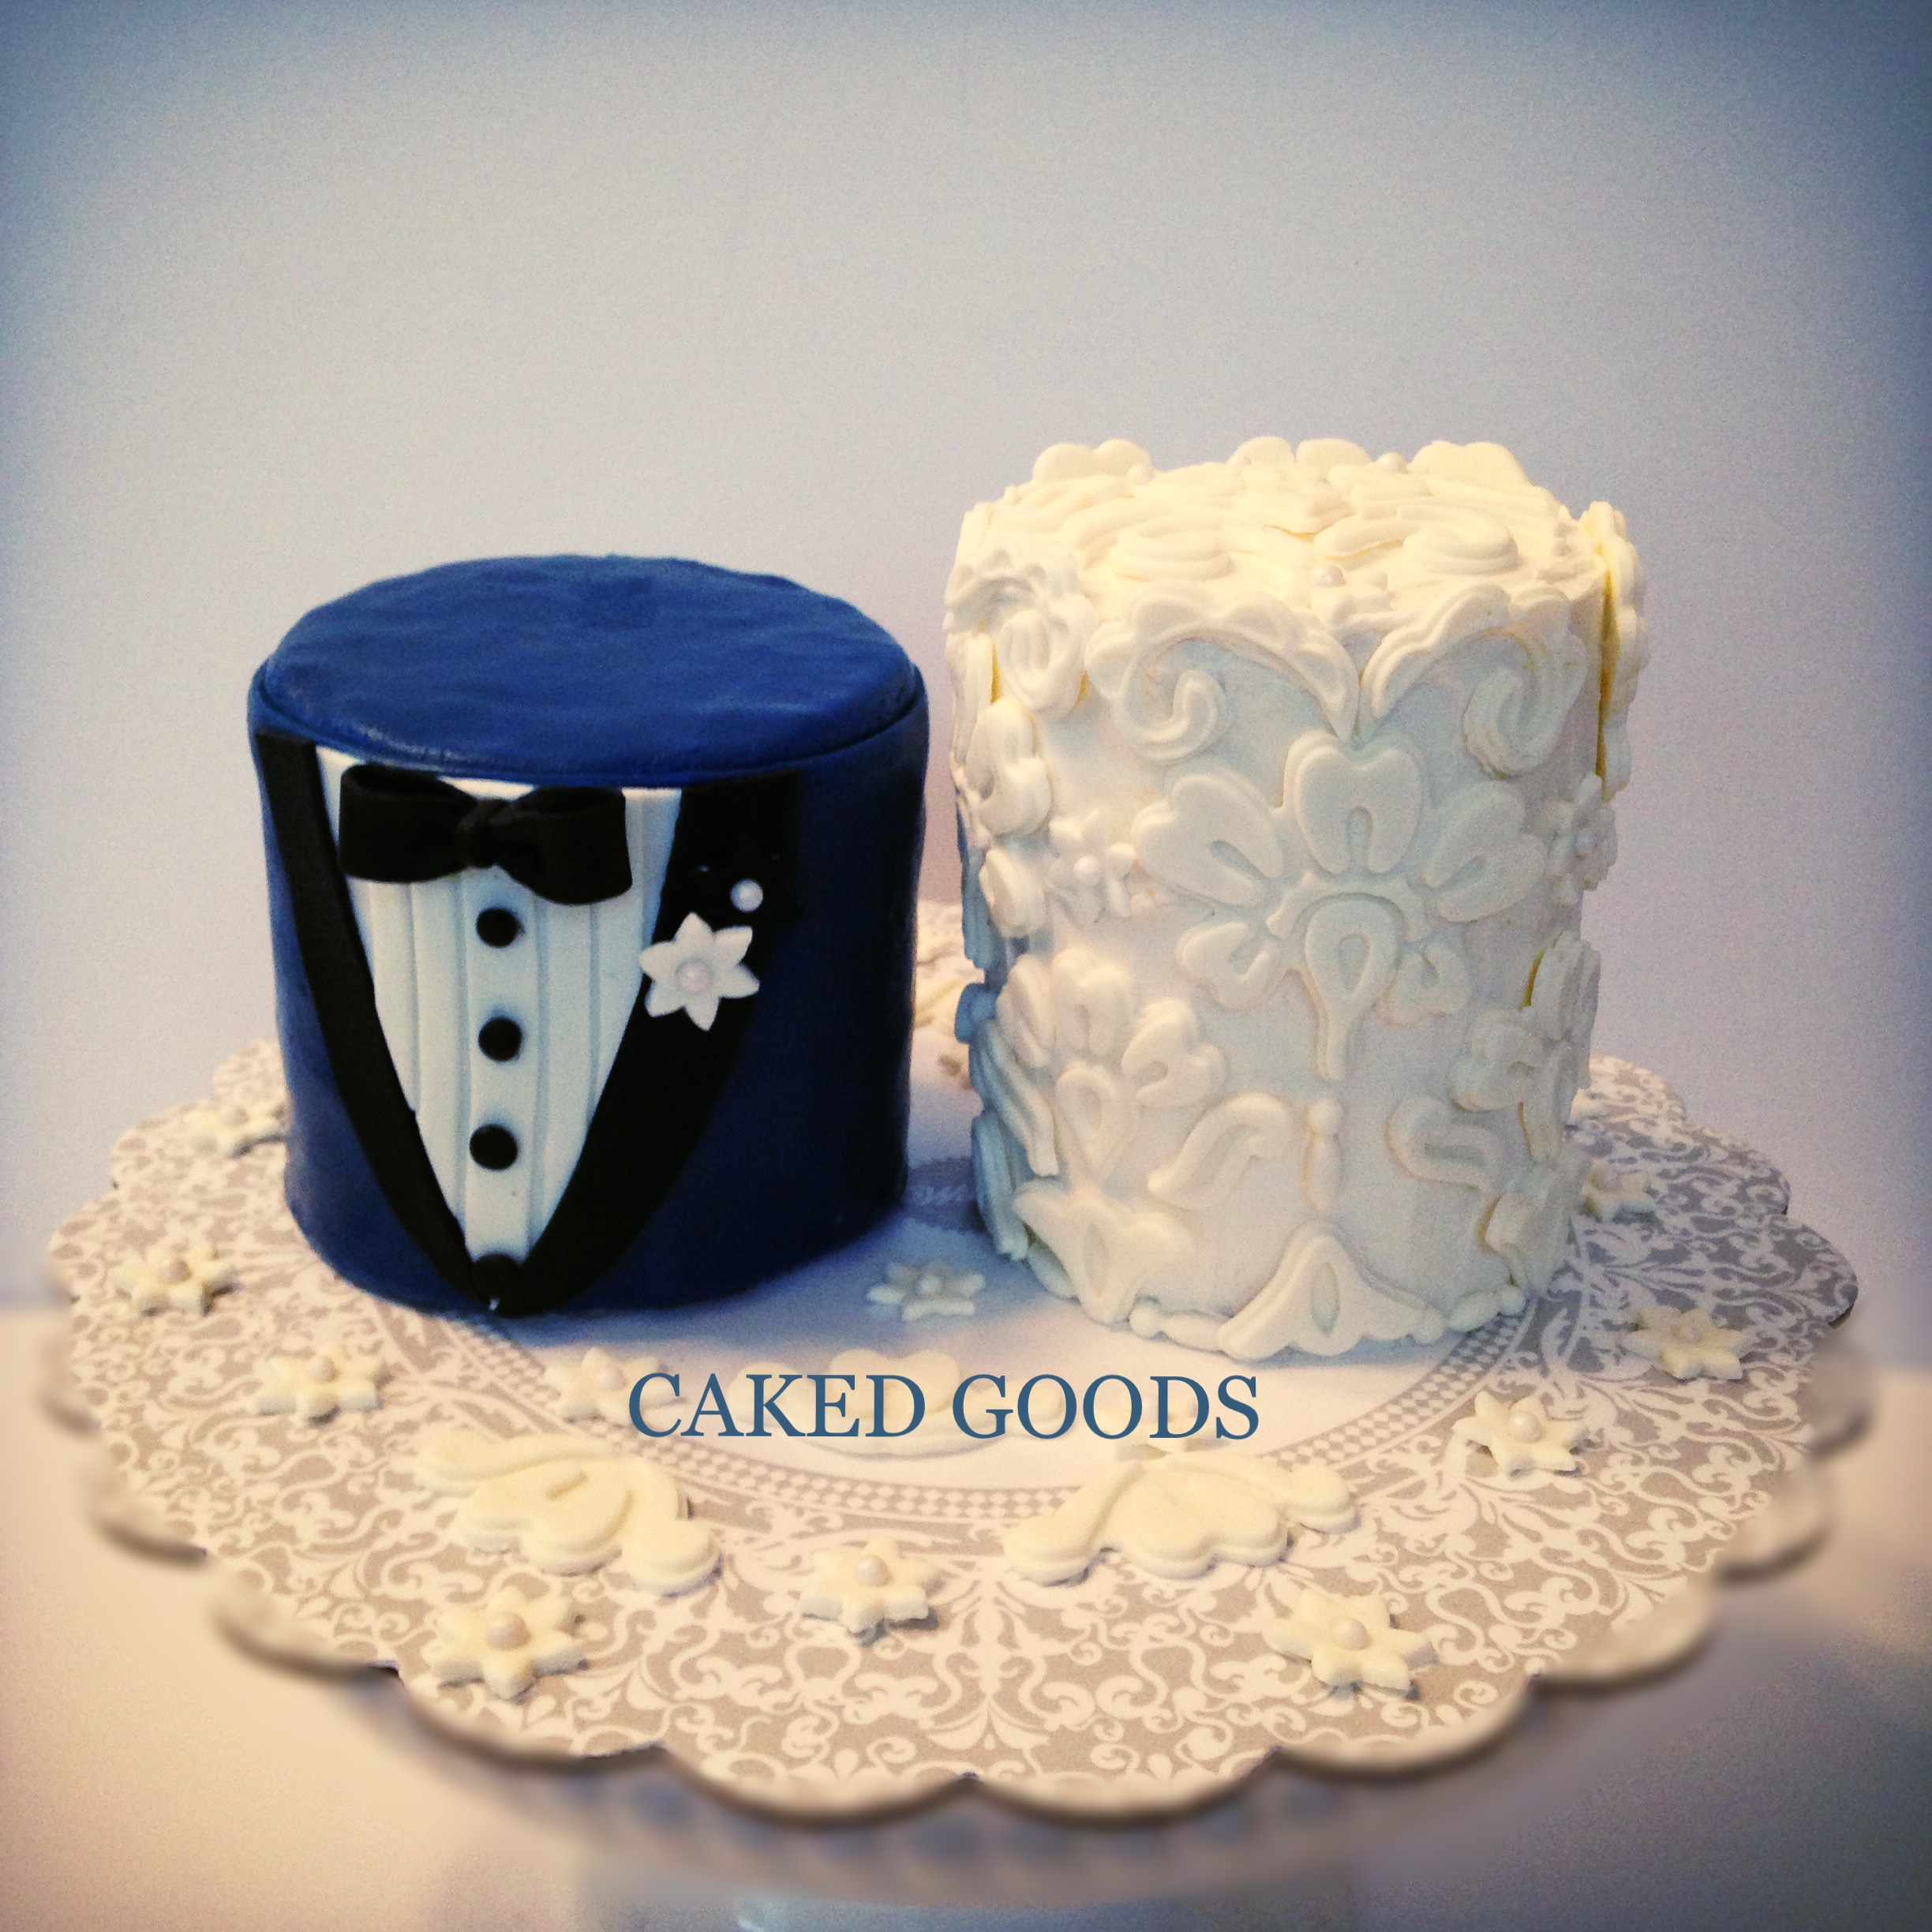 Personal Bride & Groom Cakes